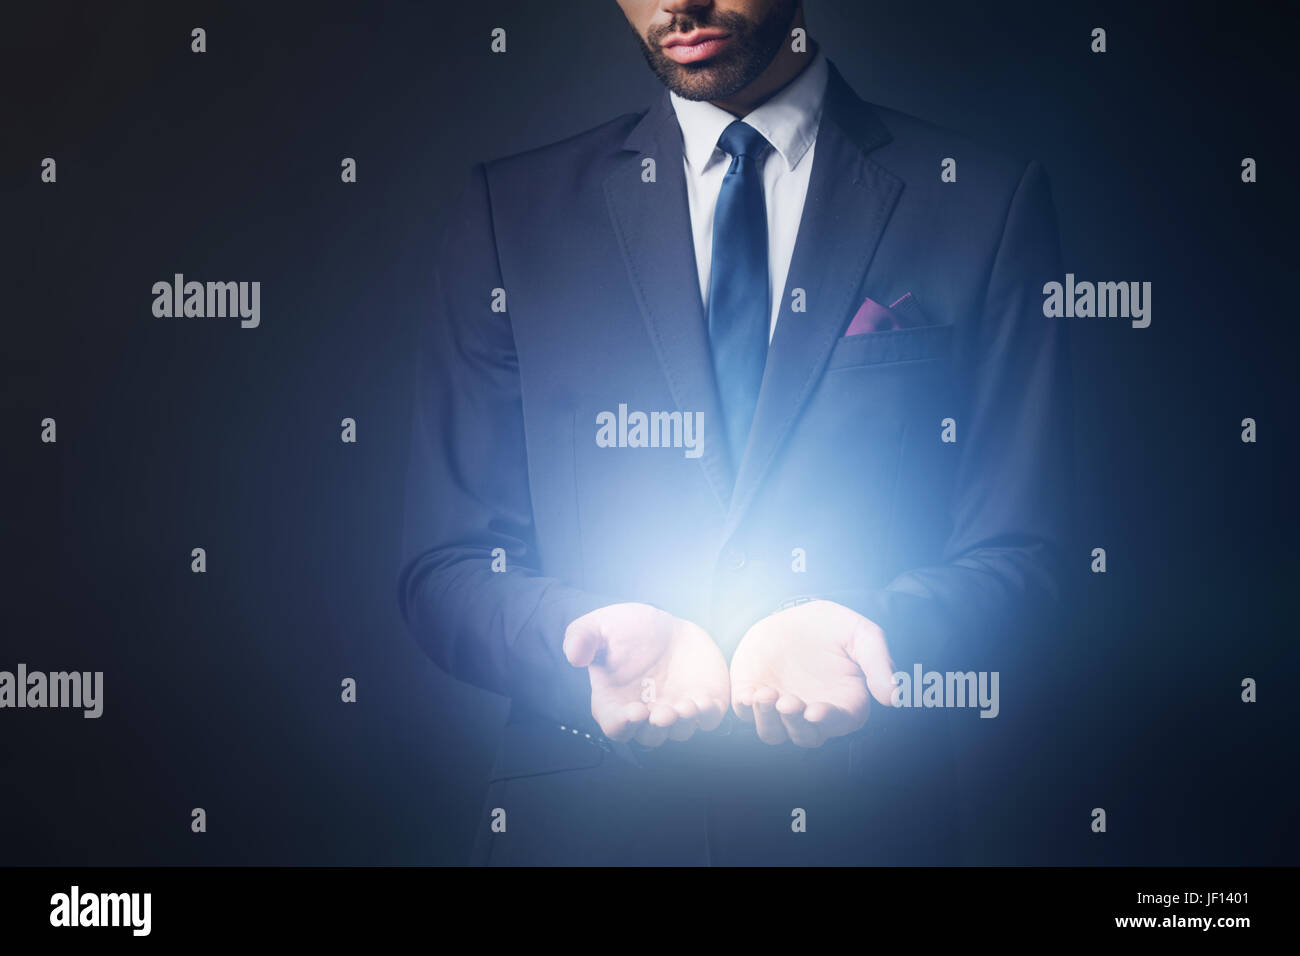 Light radiating from businessman hands. New idea, prime product concept. - Stock Image